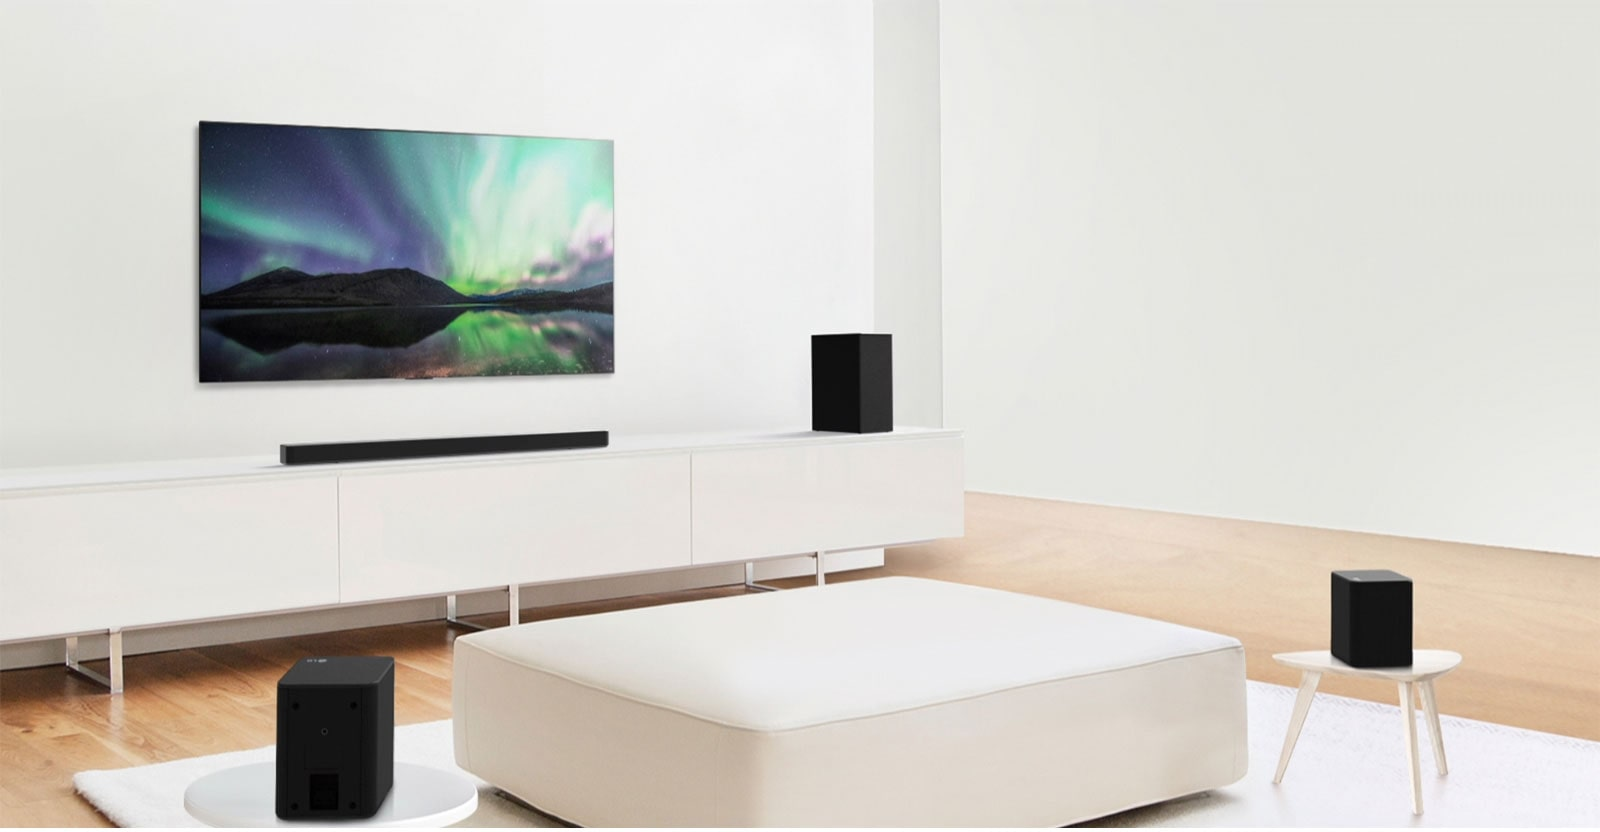 Video preview showing LG Soundbar in a white living room with 5.1 channel setup.